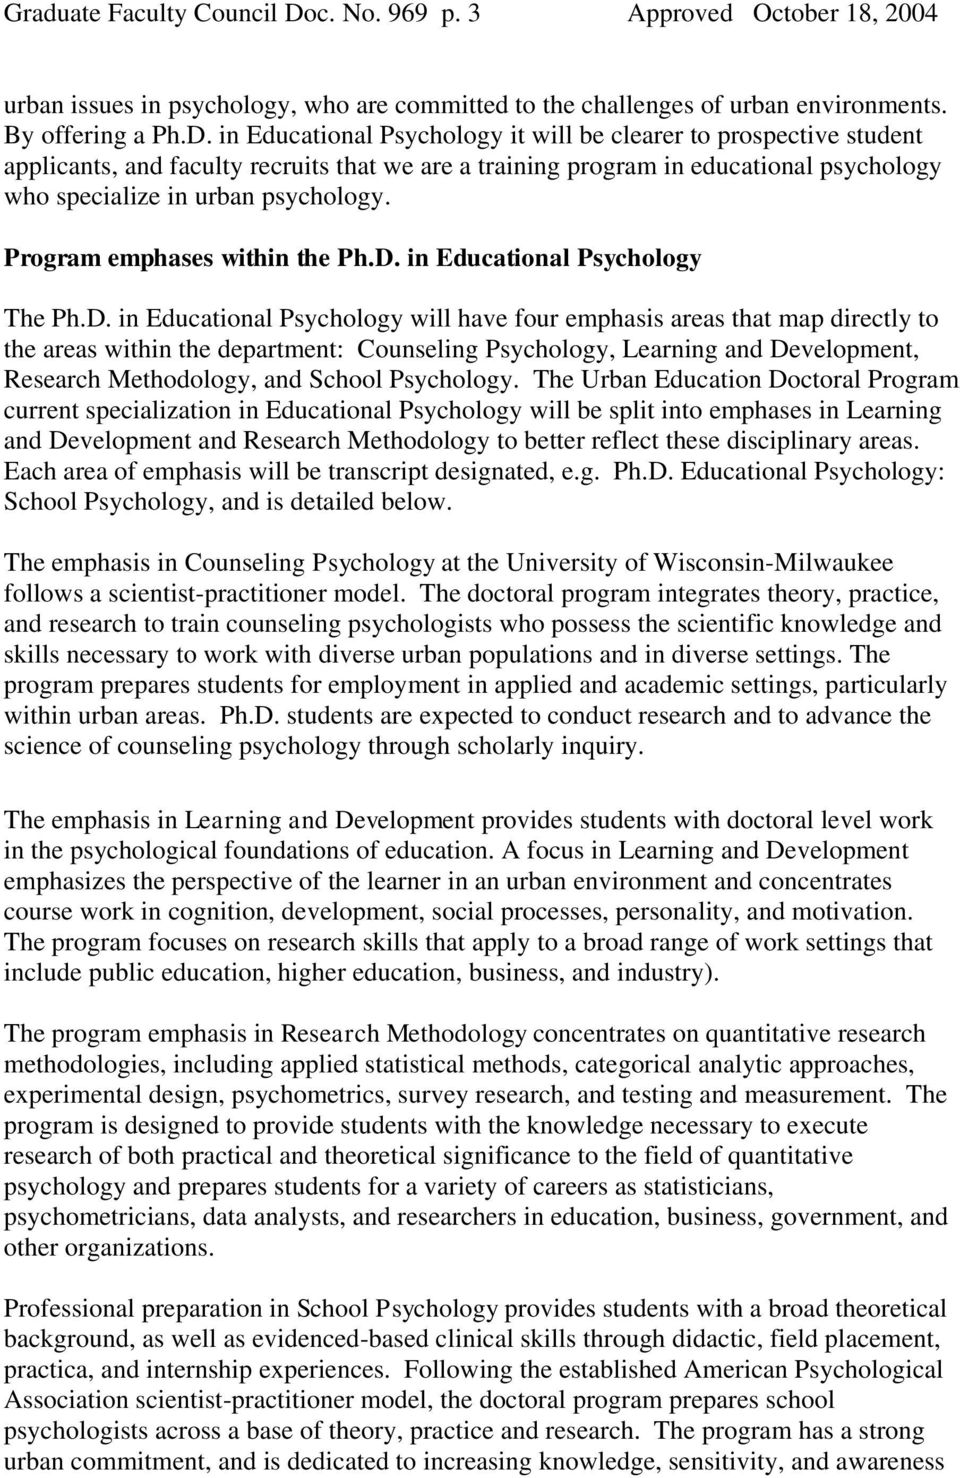 in Educational Psychology it will be clearer to prospective student applicants, and faculty recruits that we are a training program in educational psychology who specialize in urban psychology.